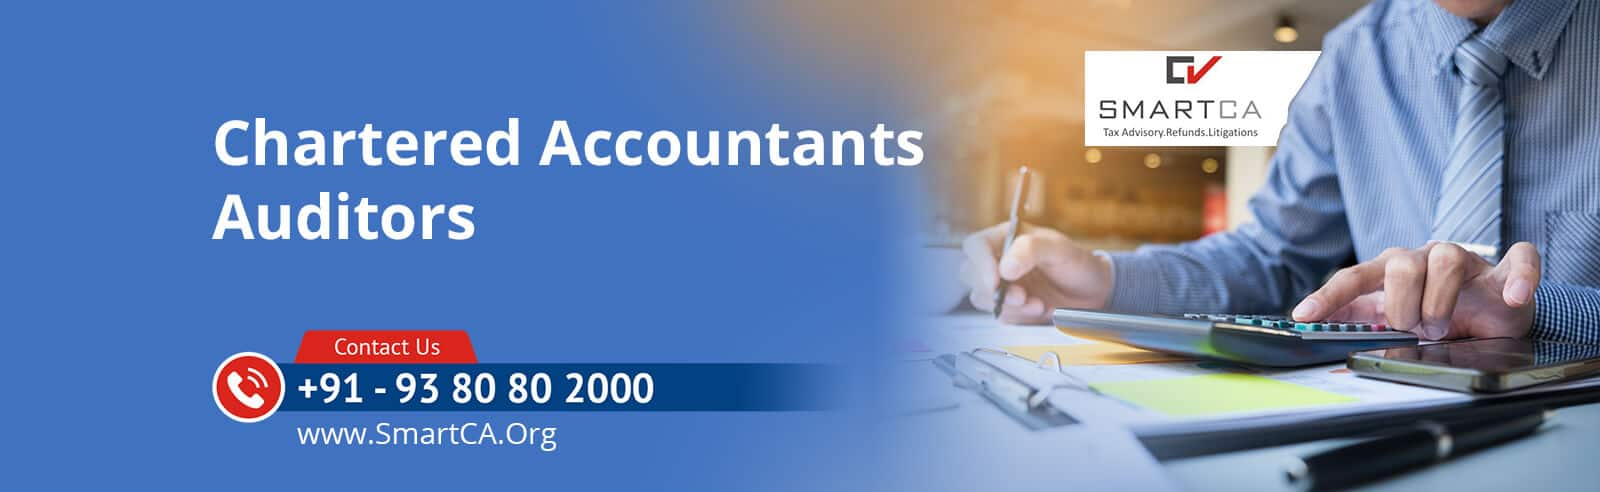 Auditors in Chennai Purasaiwakkam